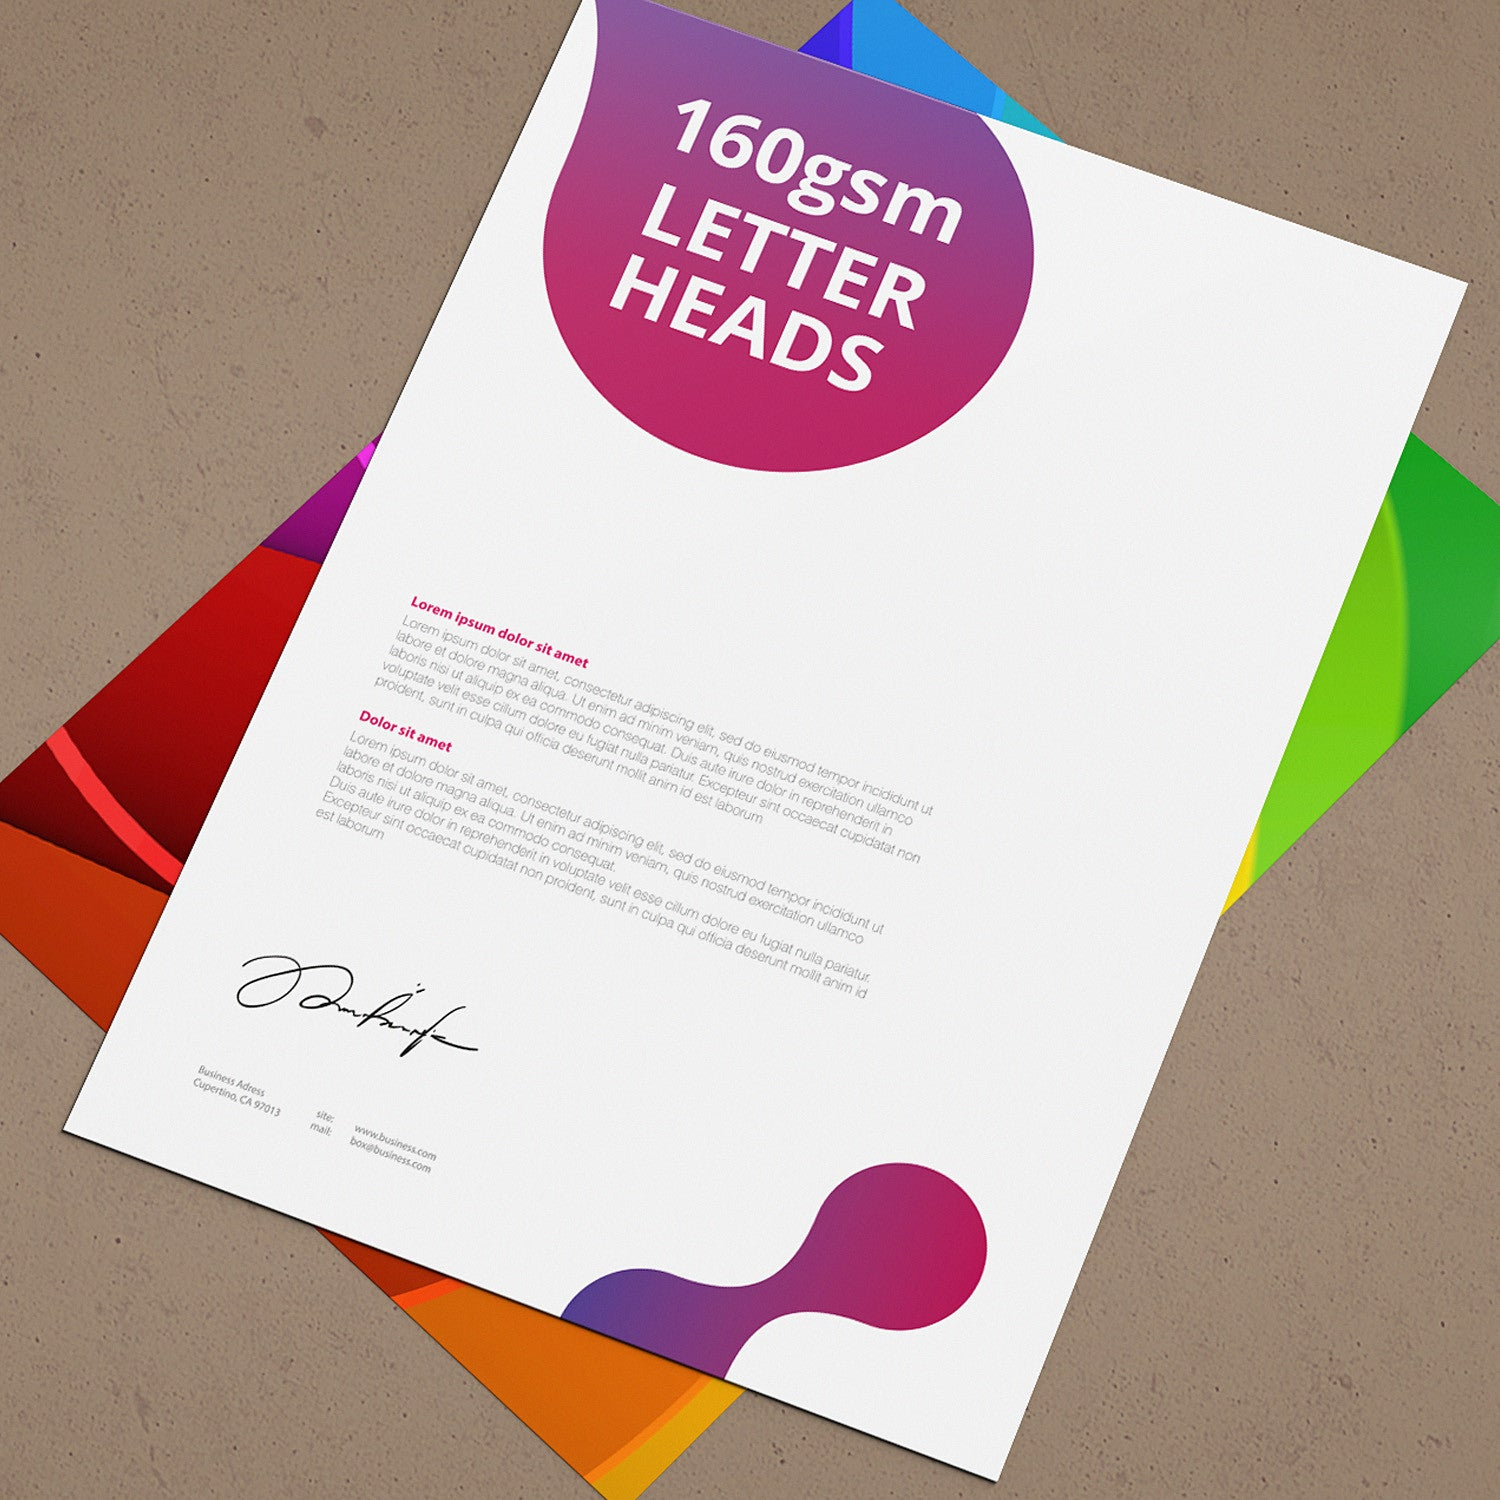 160gsm letterheads arch 5 design